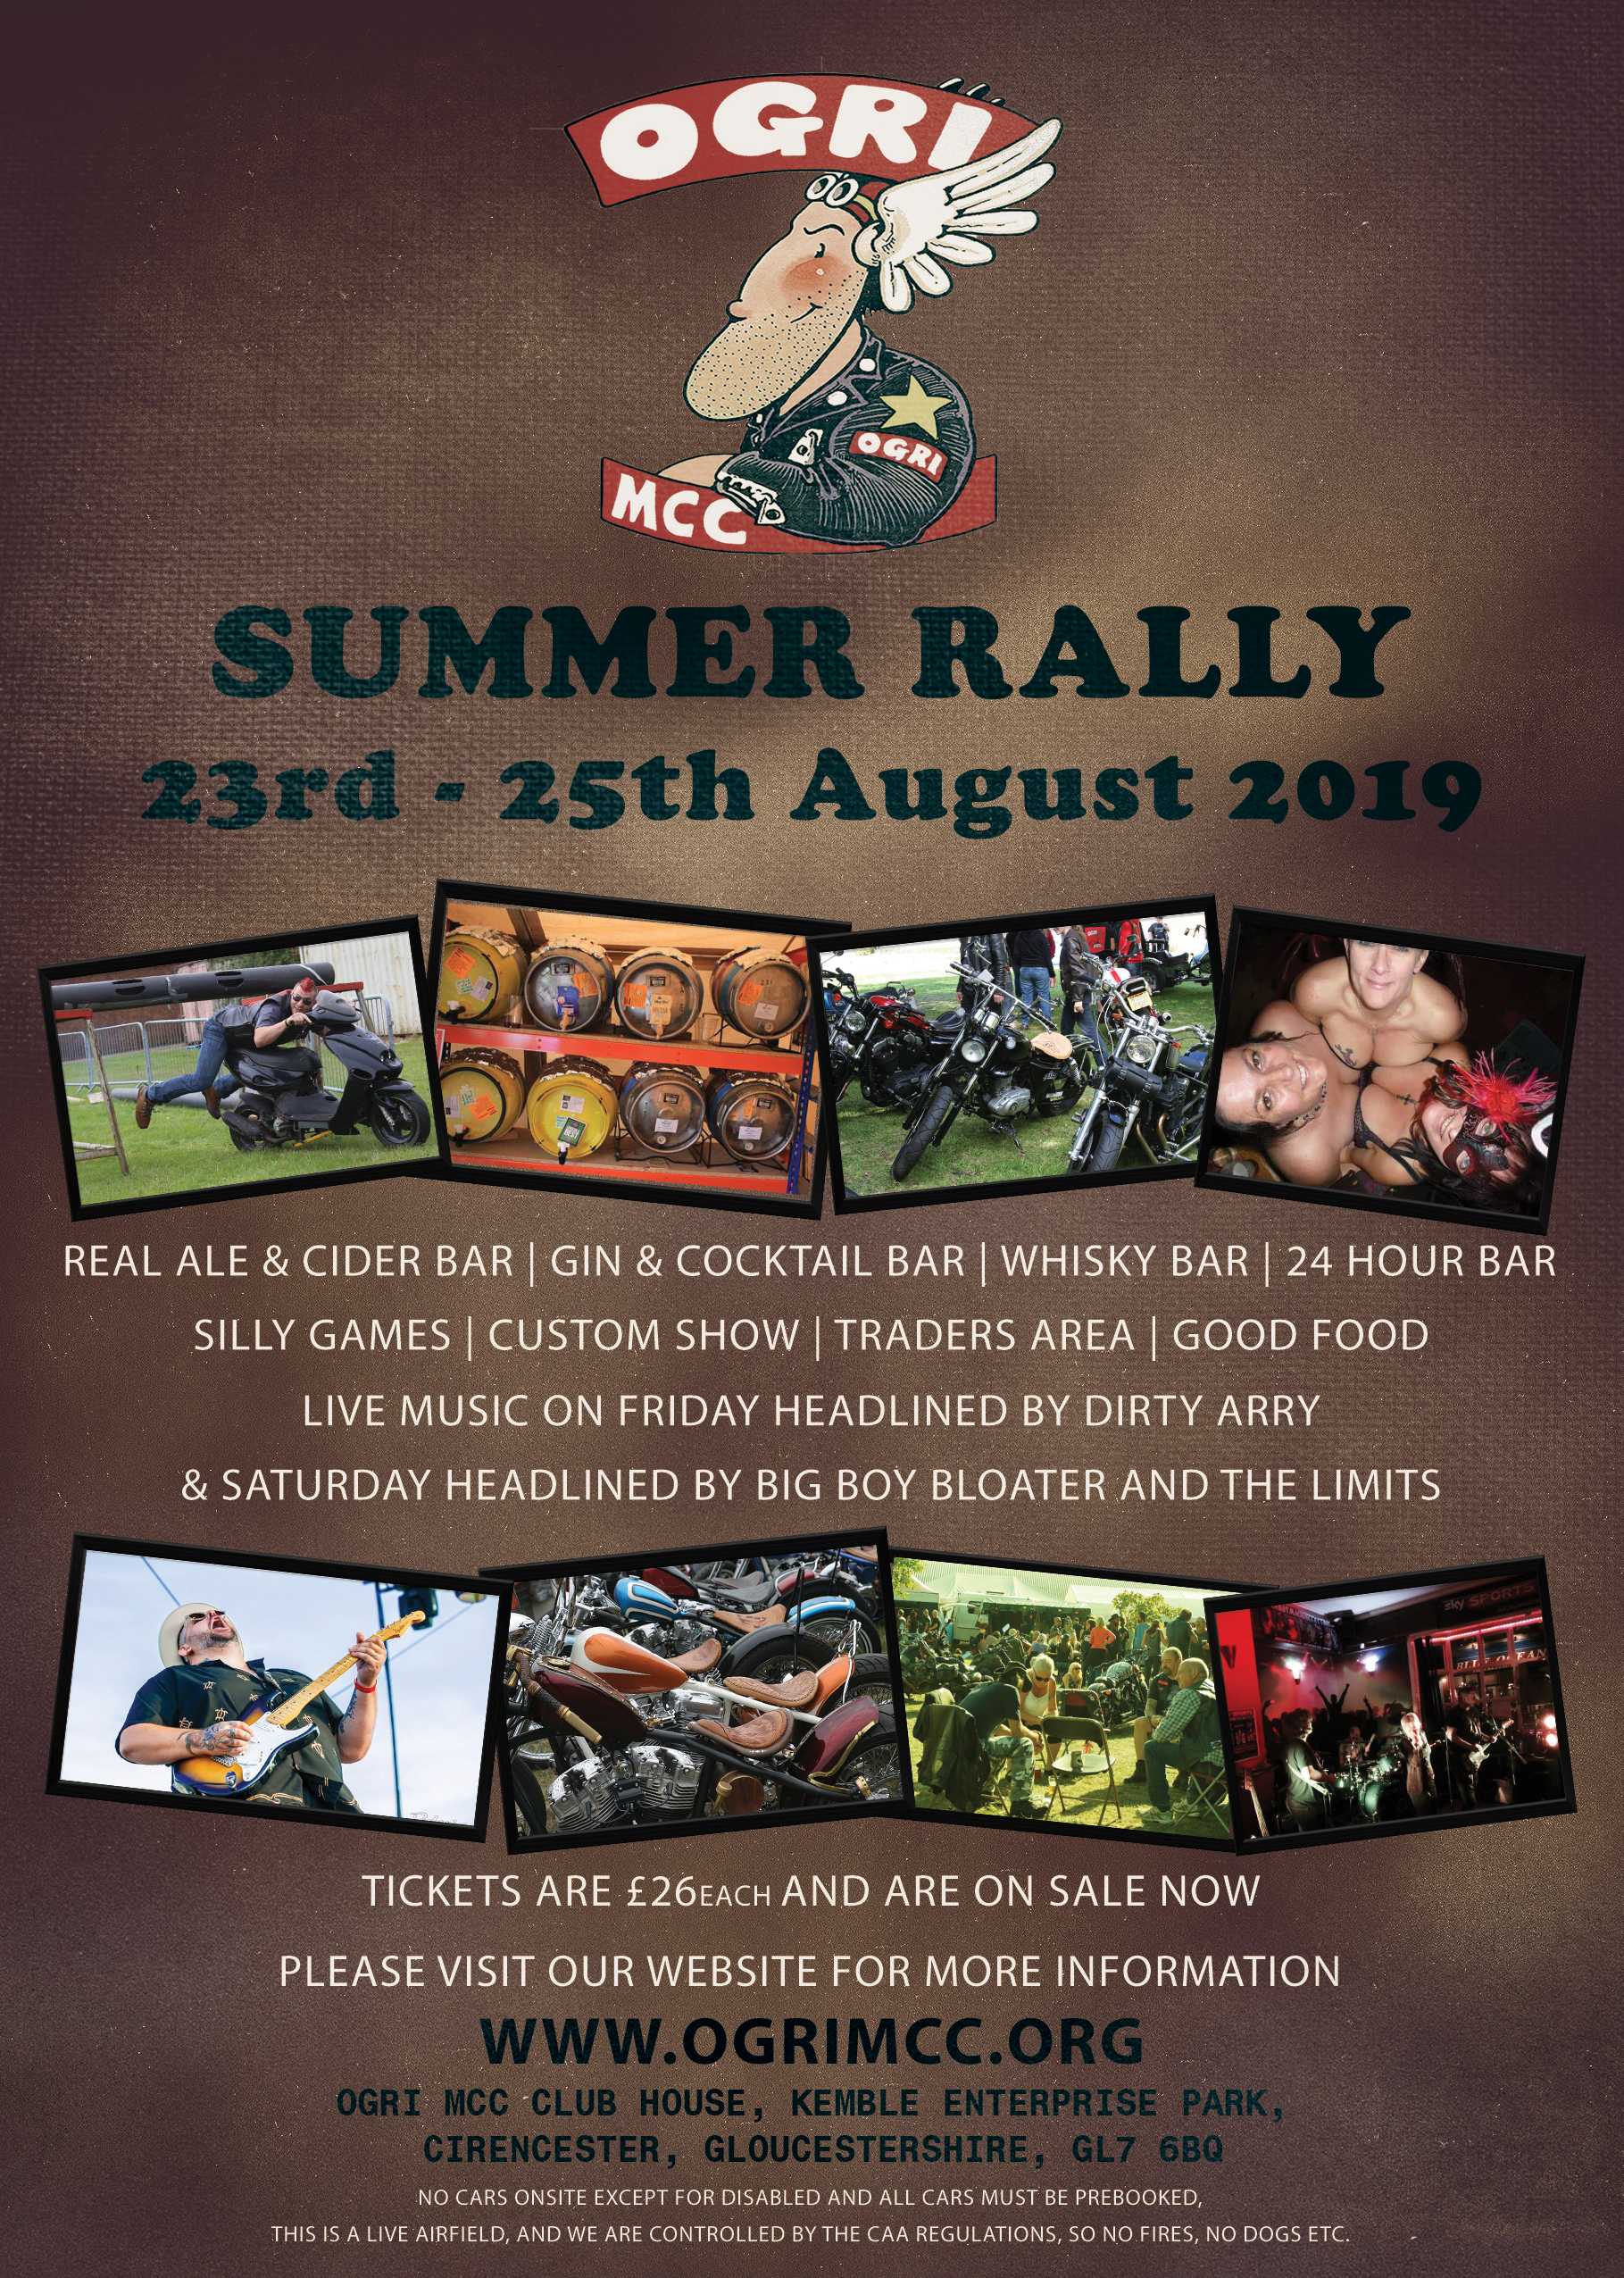 OGRI MCC Summer Rally 2019 Flyer